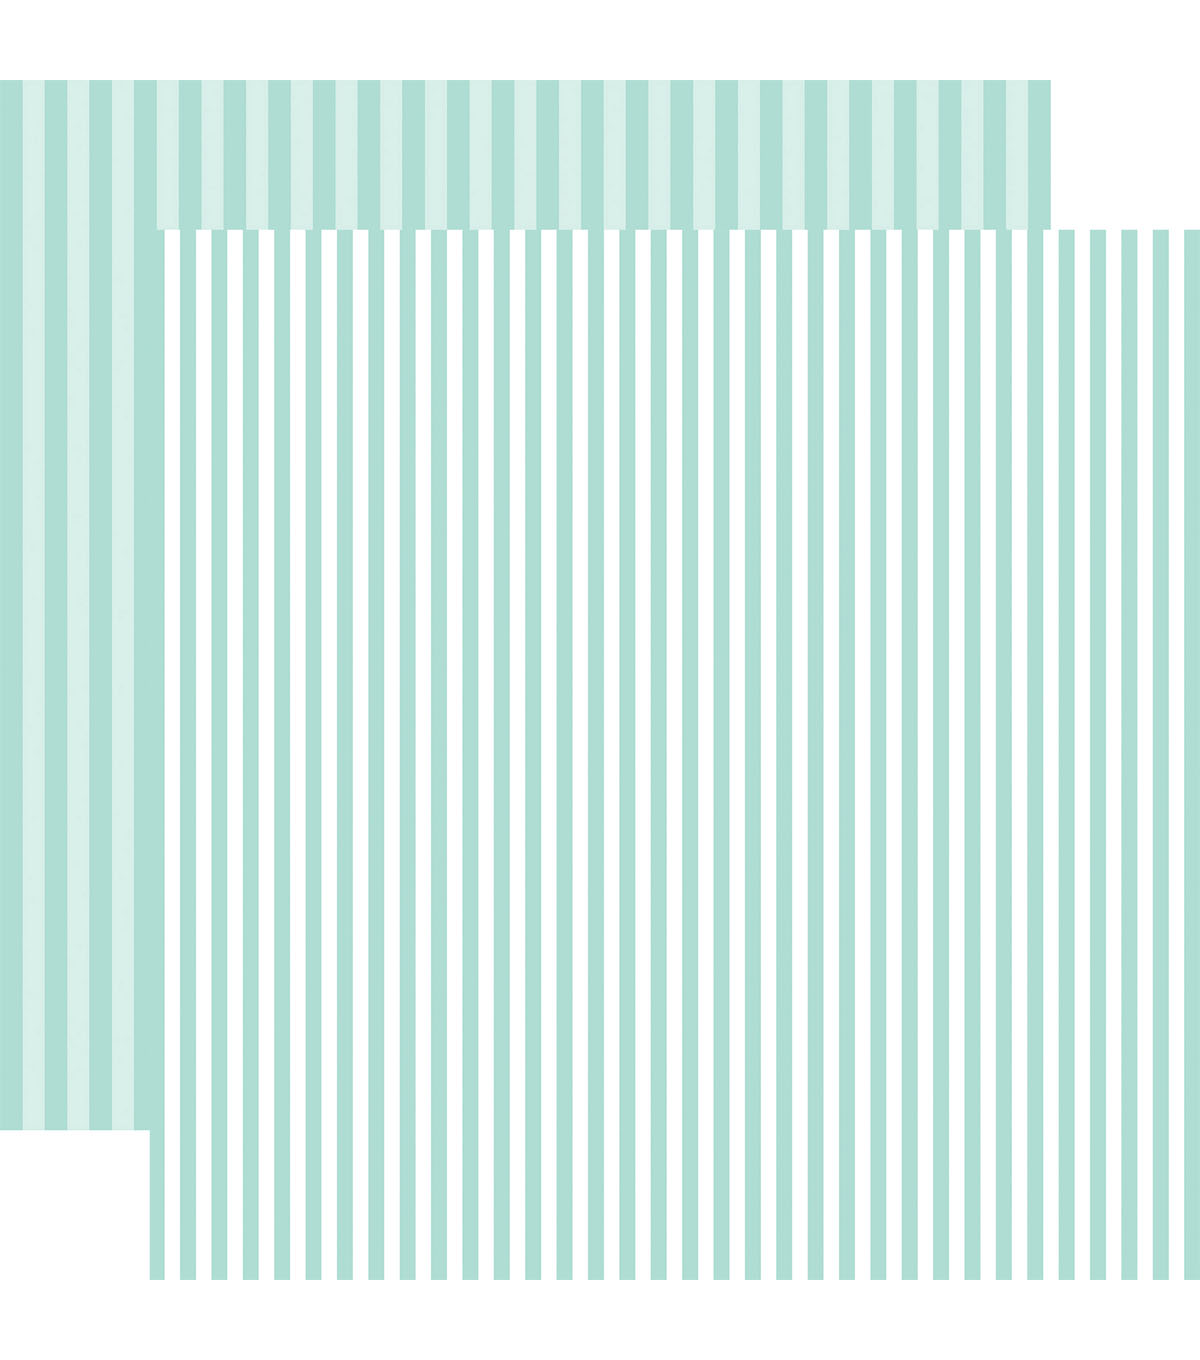 Echo Park Dots & Stripes Spring 12\u0027\u0027x12\u0027\u0027 Cardstock-Stripe on Blueberry